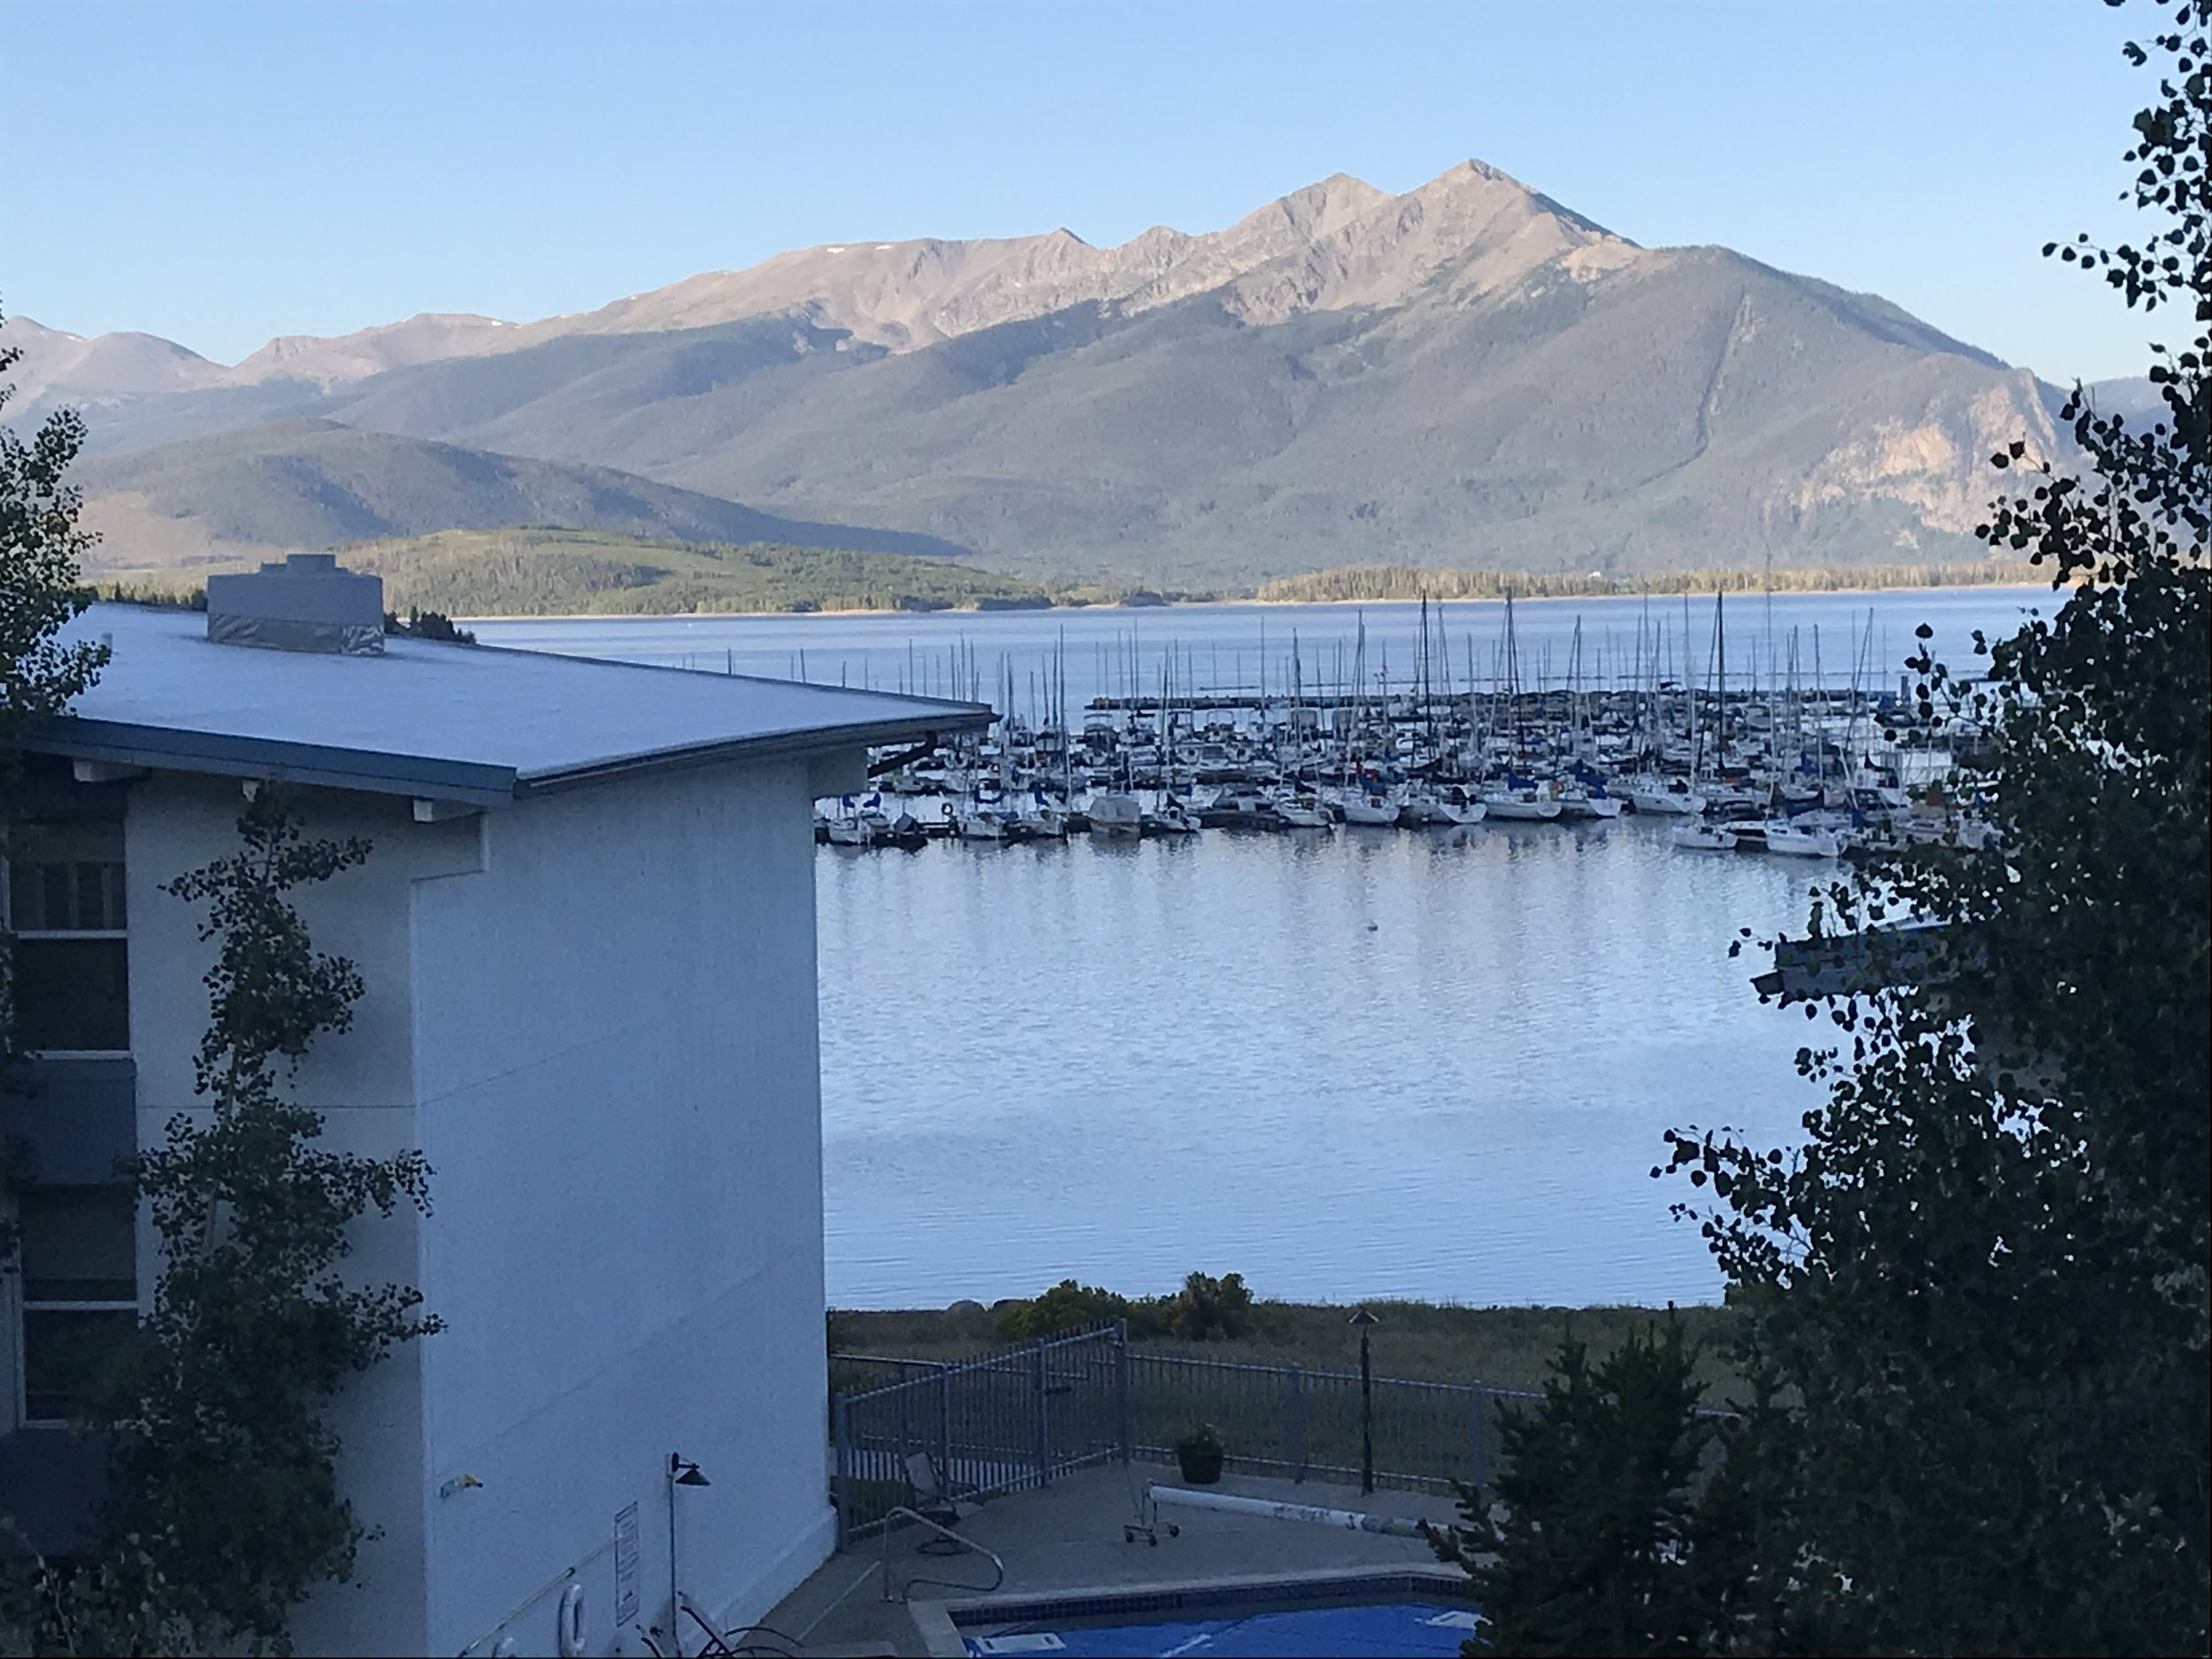 What a great view off of the balcony of the condo: Lake Dillon with the Rockies in the background!